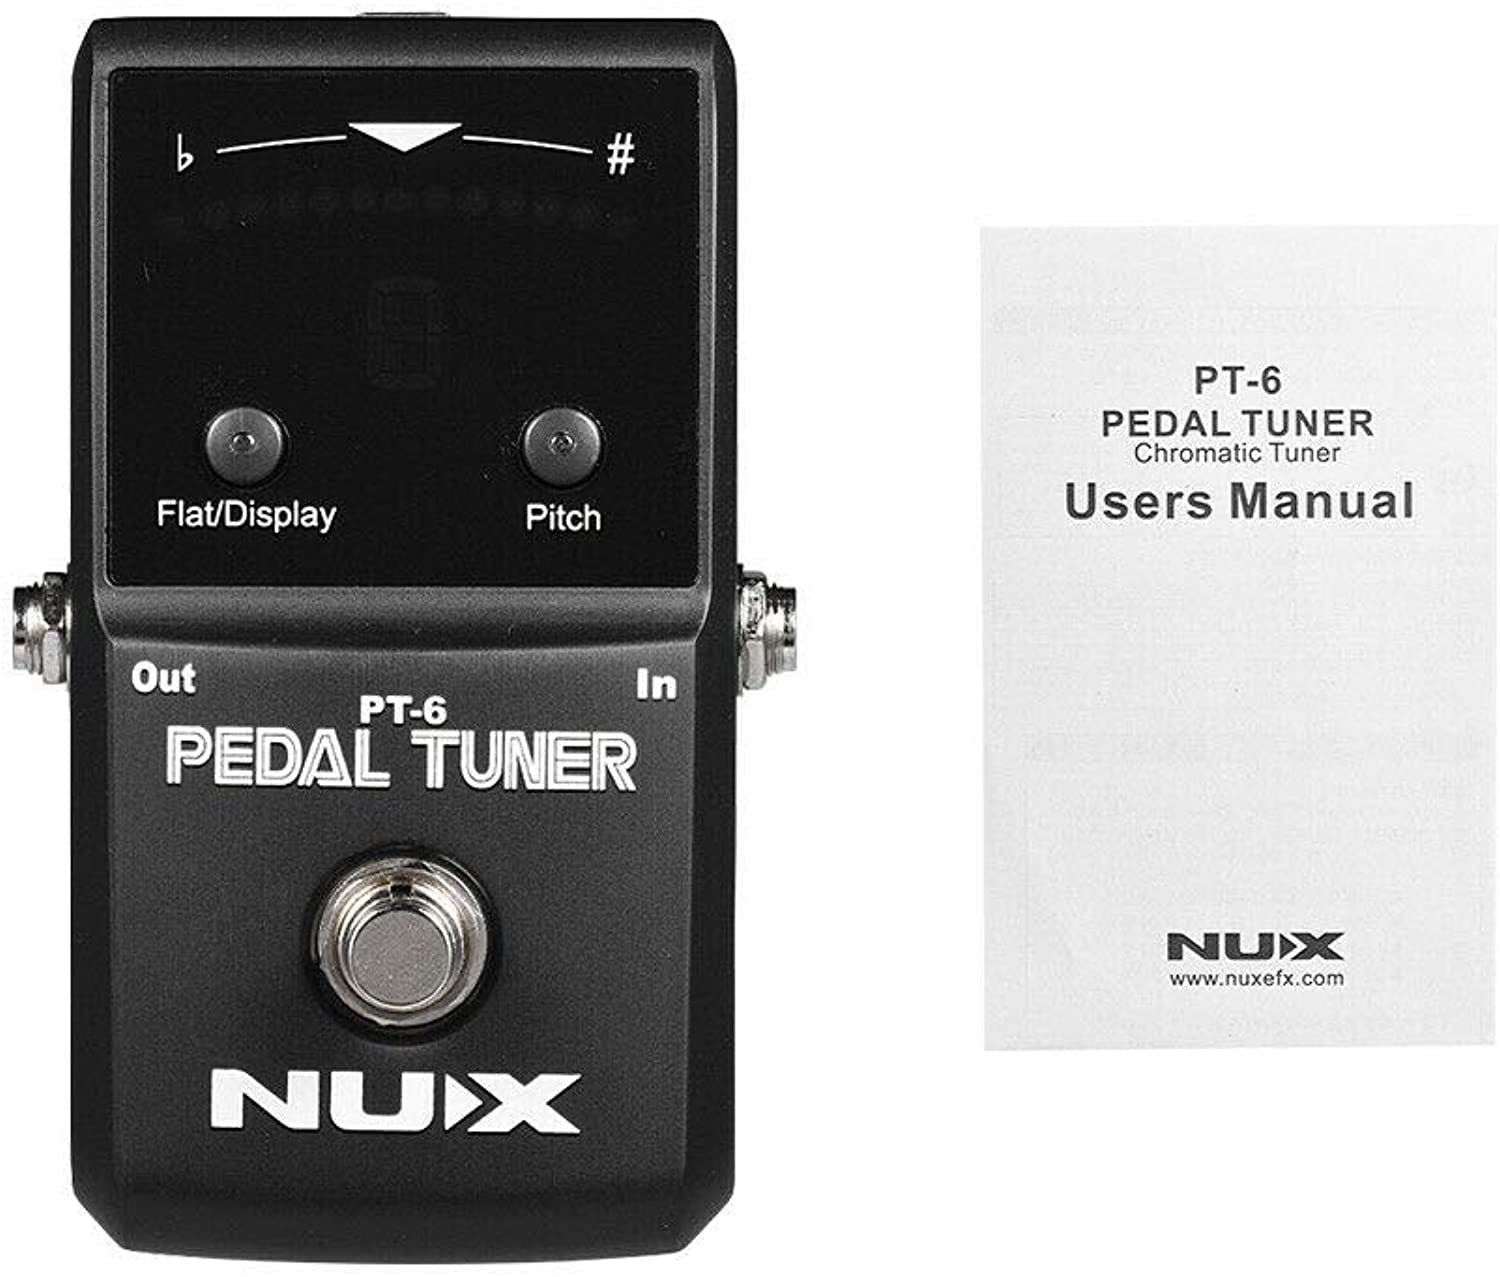 DSstyles NUX PT-6 Chromatic Pedal Tuner with Metal Casing True Bypass Guitar Accessories